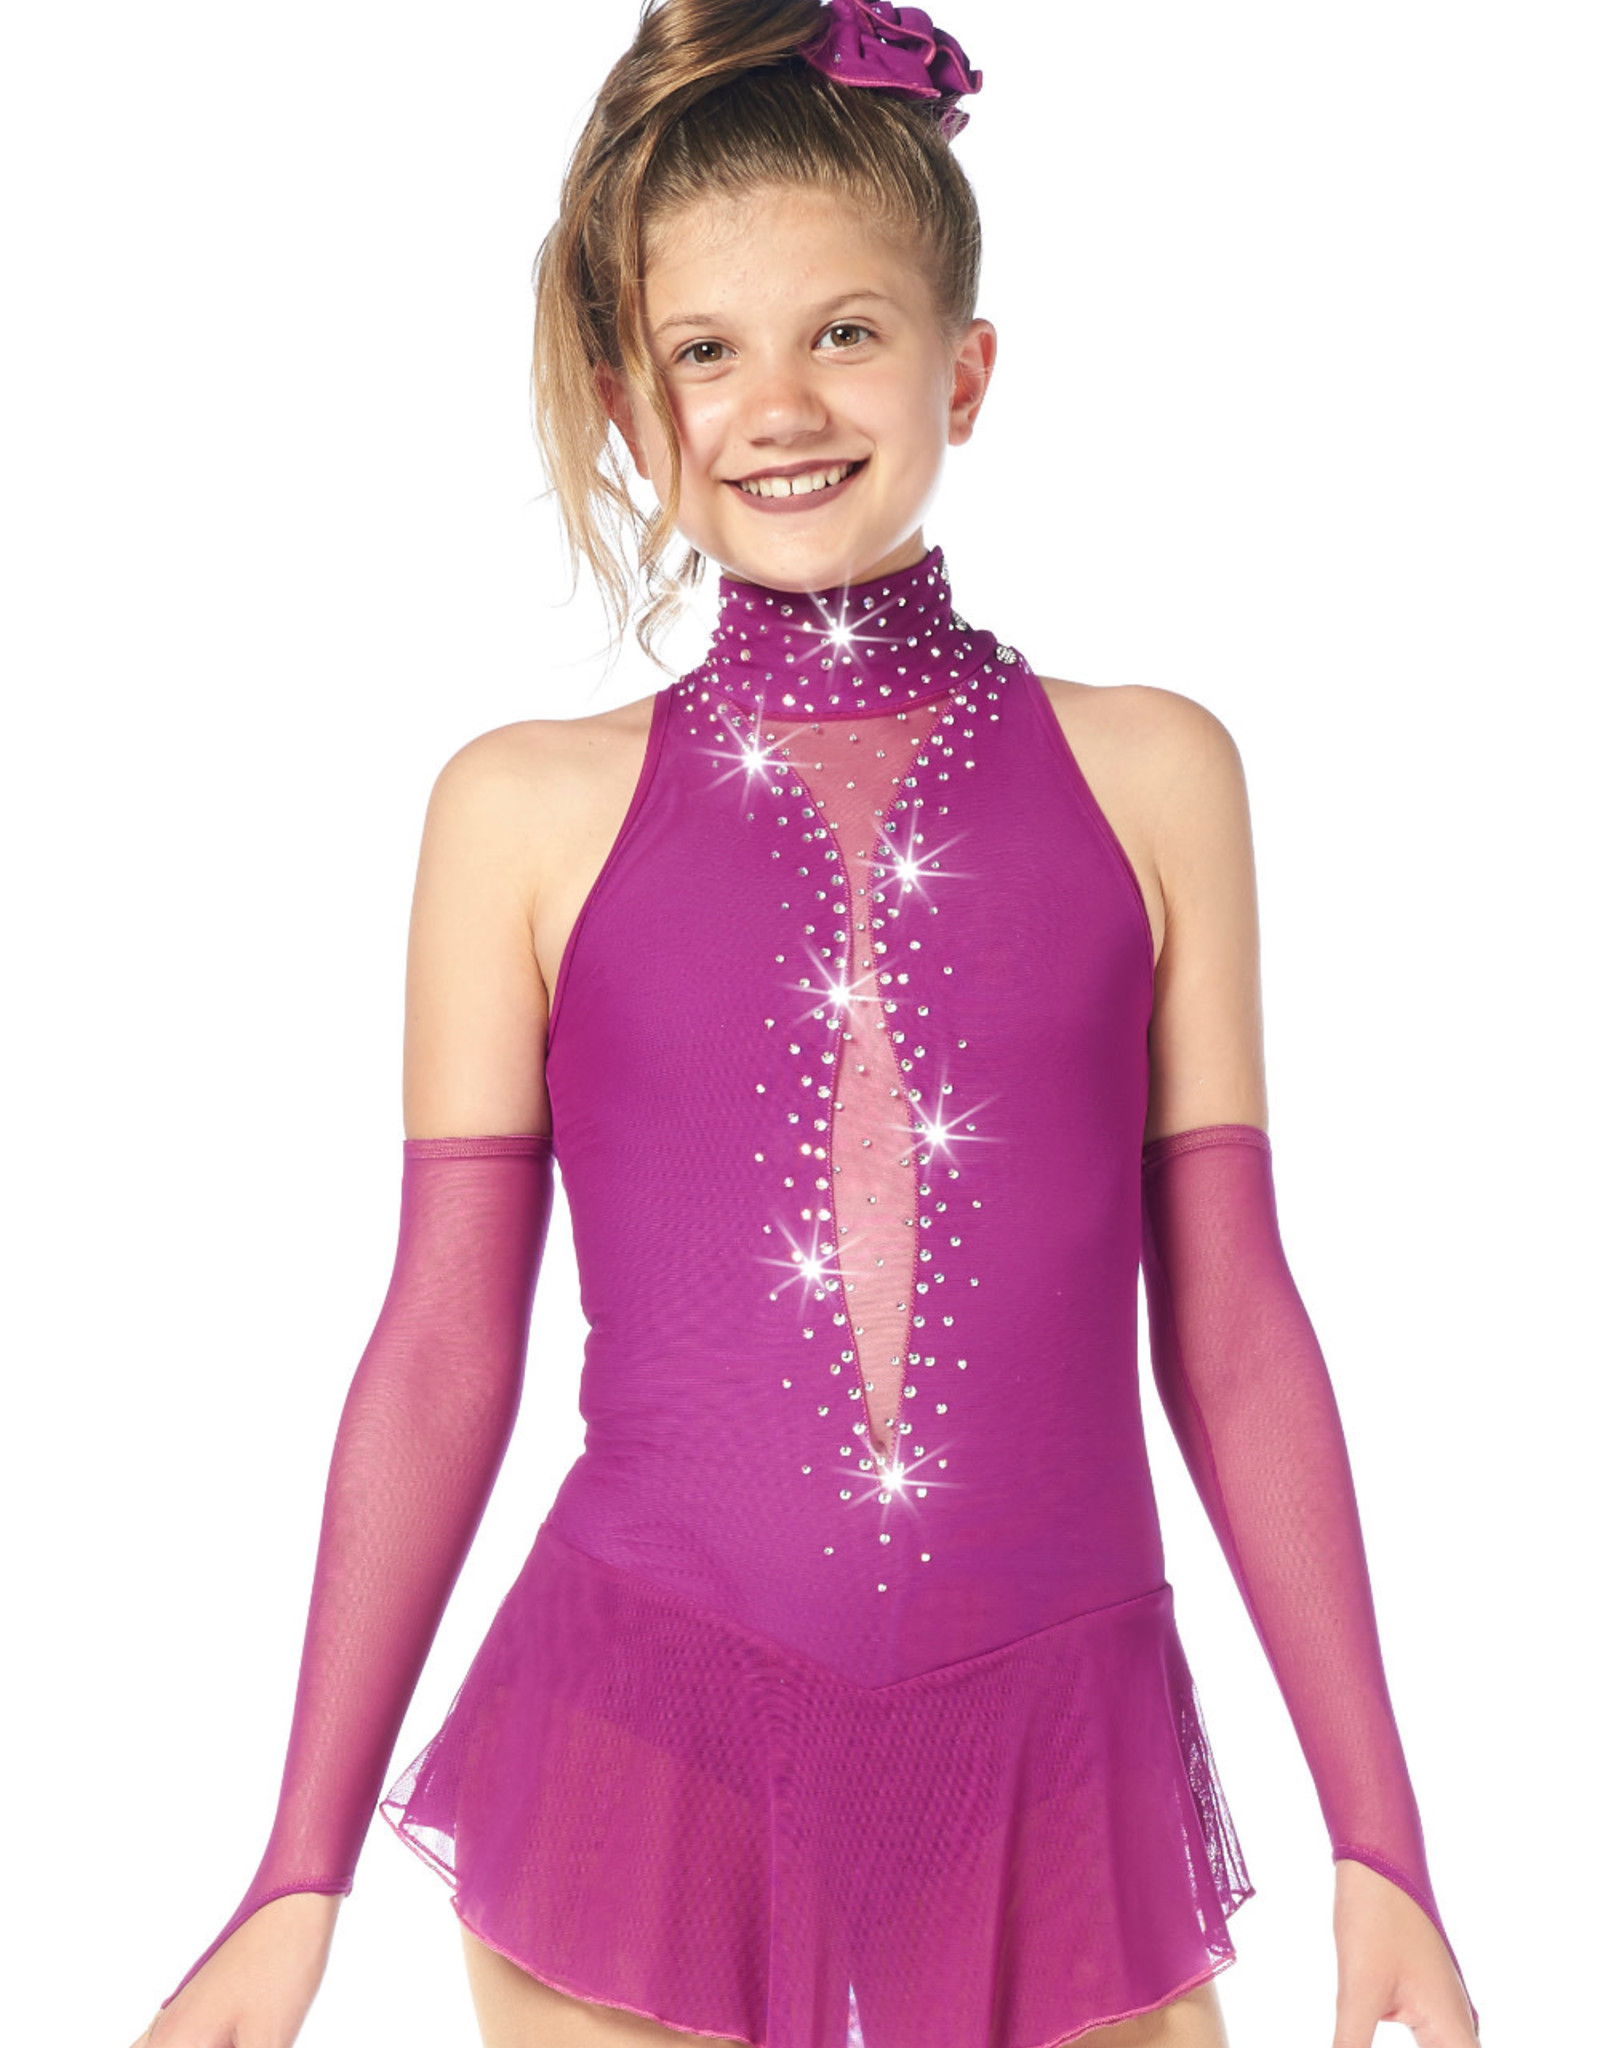 Sagester 2056 Competition Dress